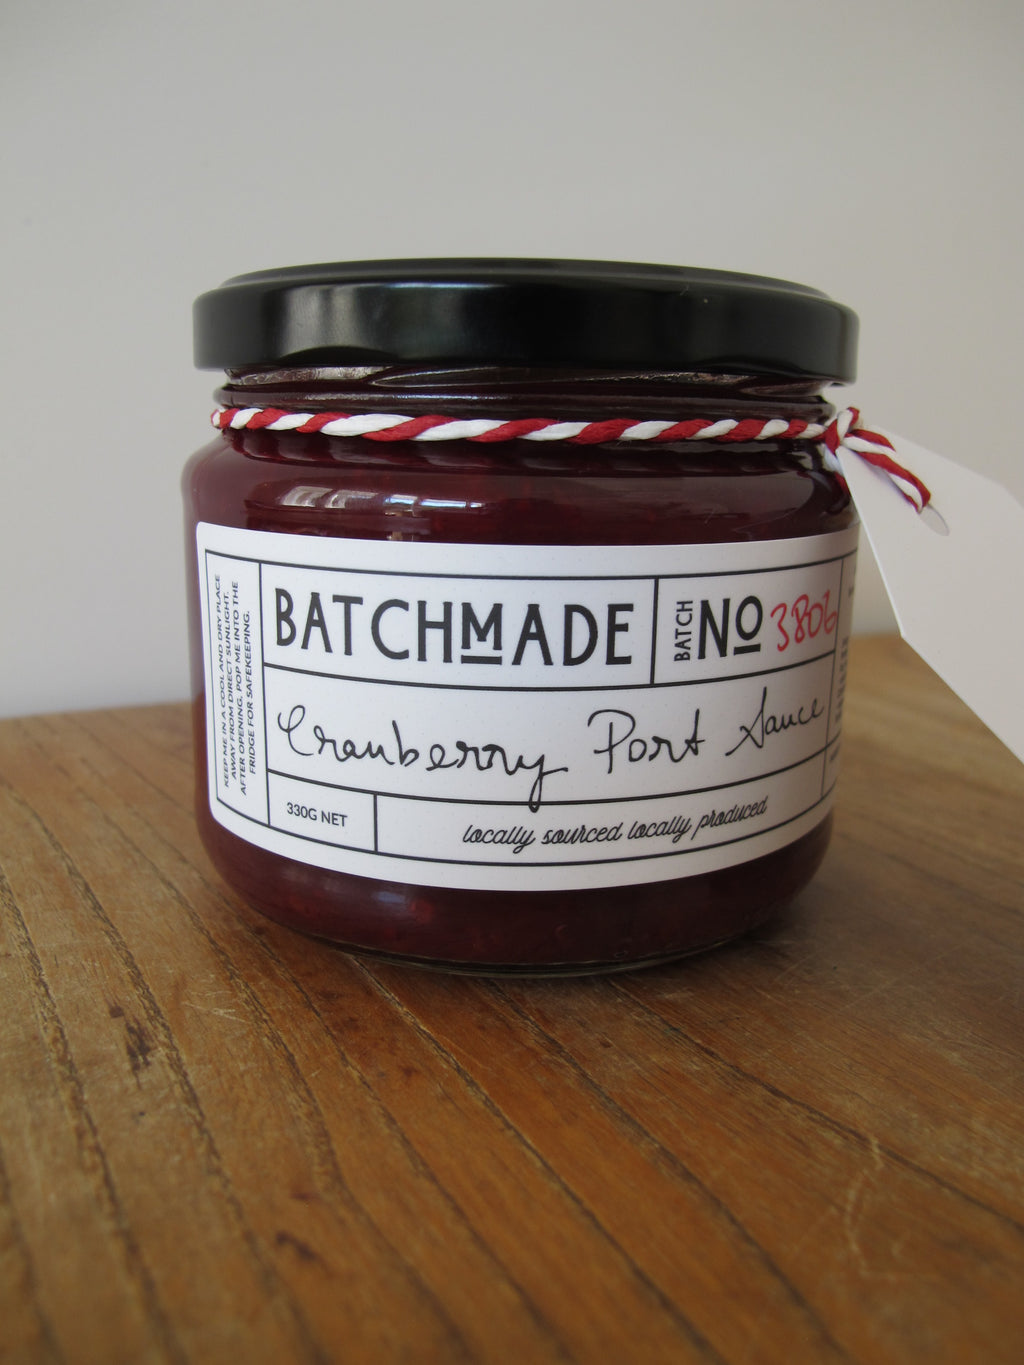 Cranberry and port sauce by BatchMade